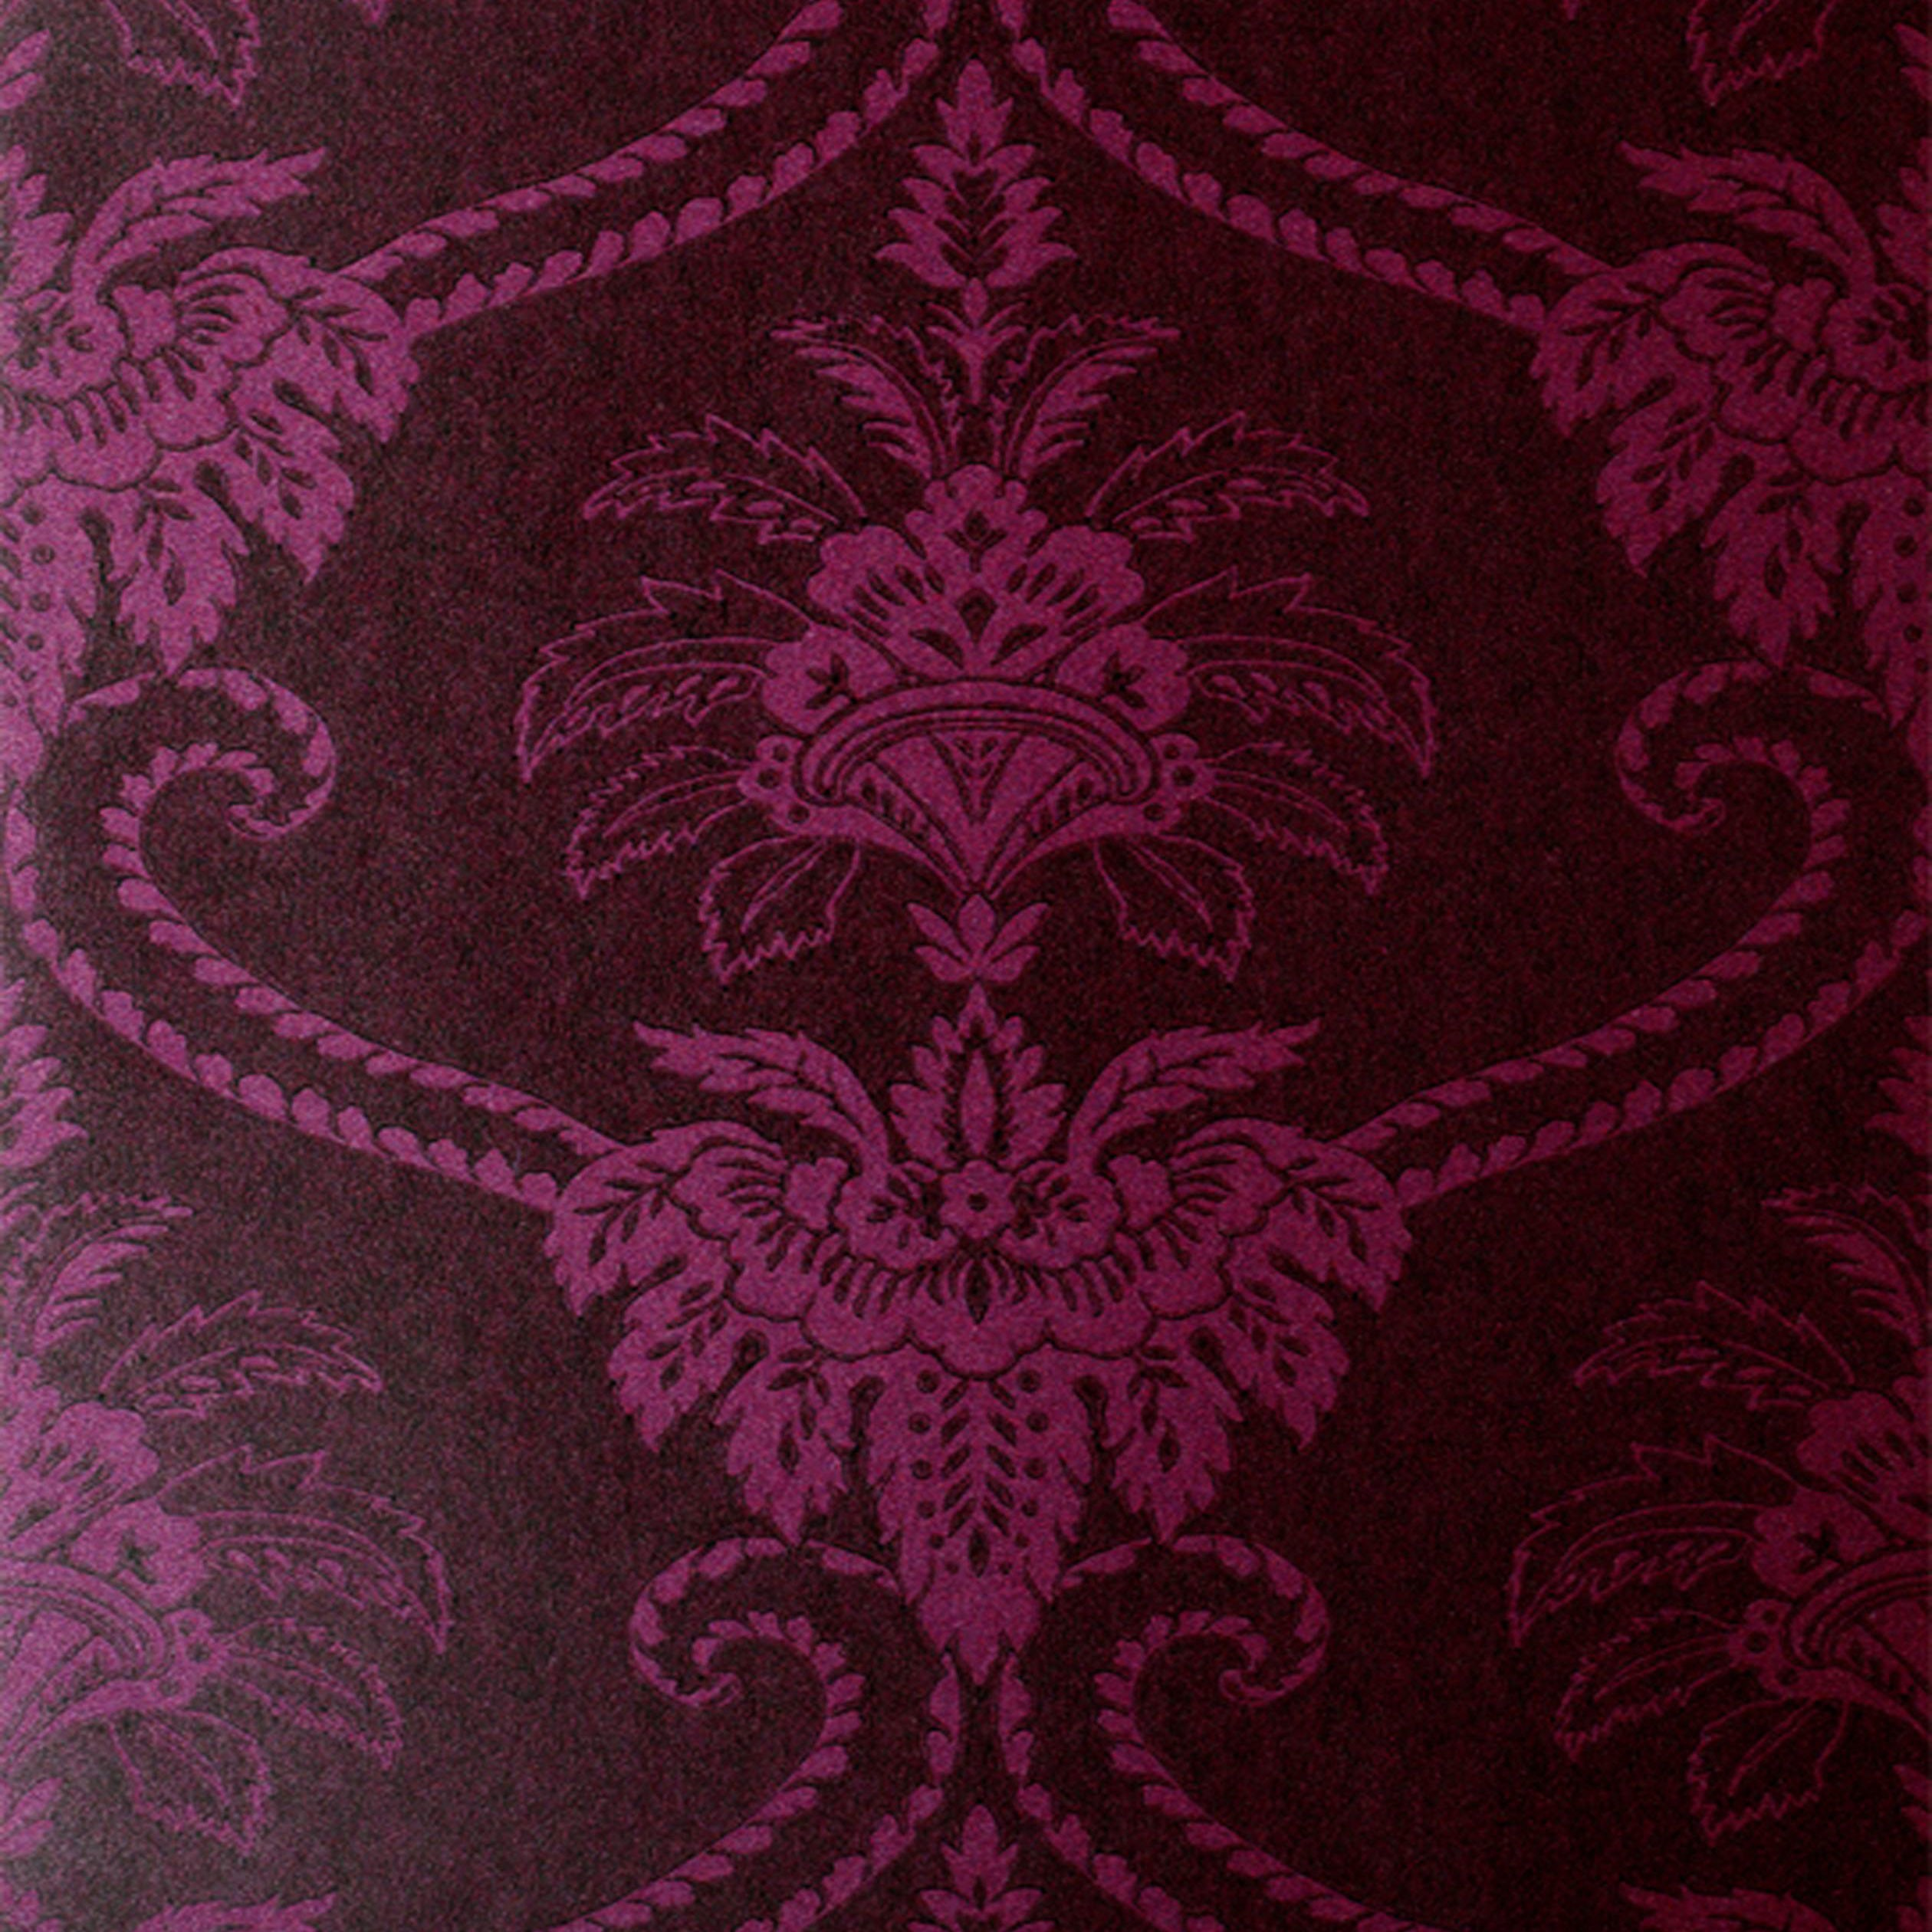 black and purple damask wallpaper wwwpixsharkcom